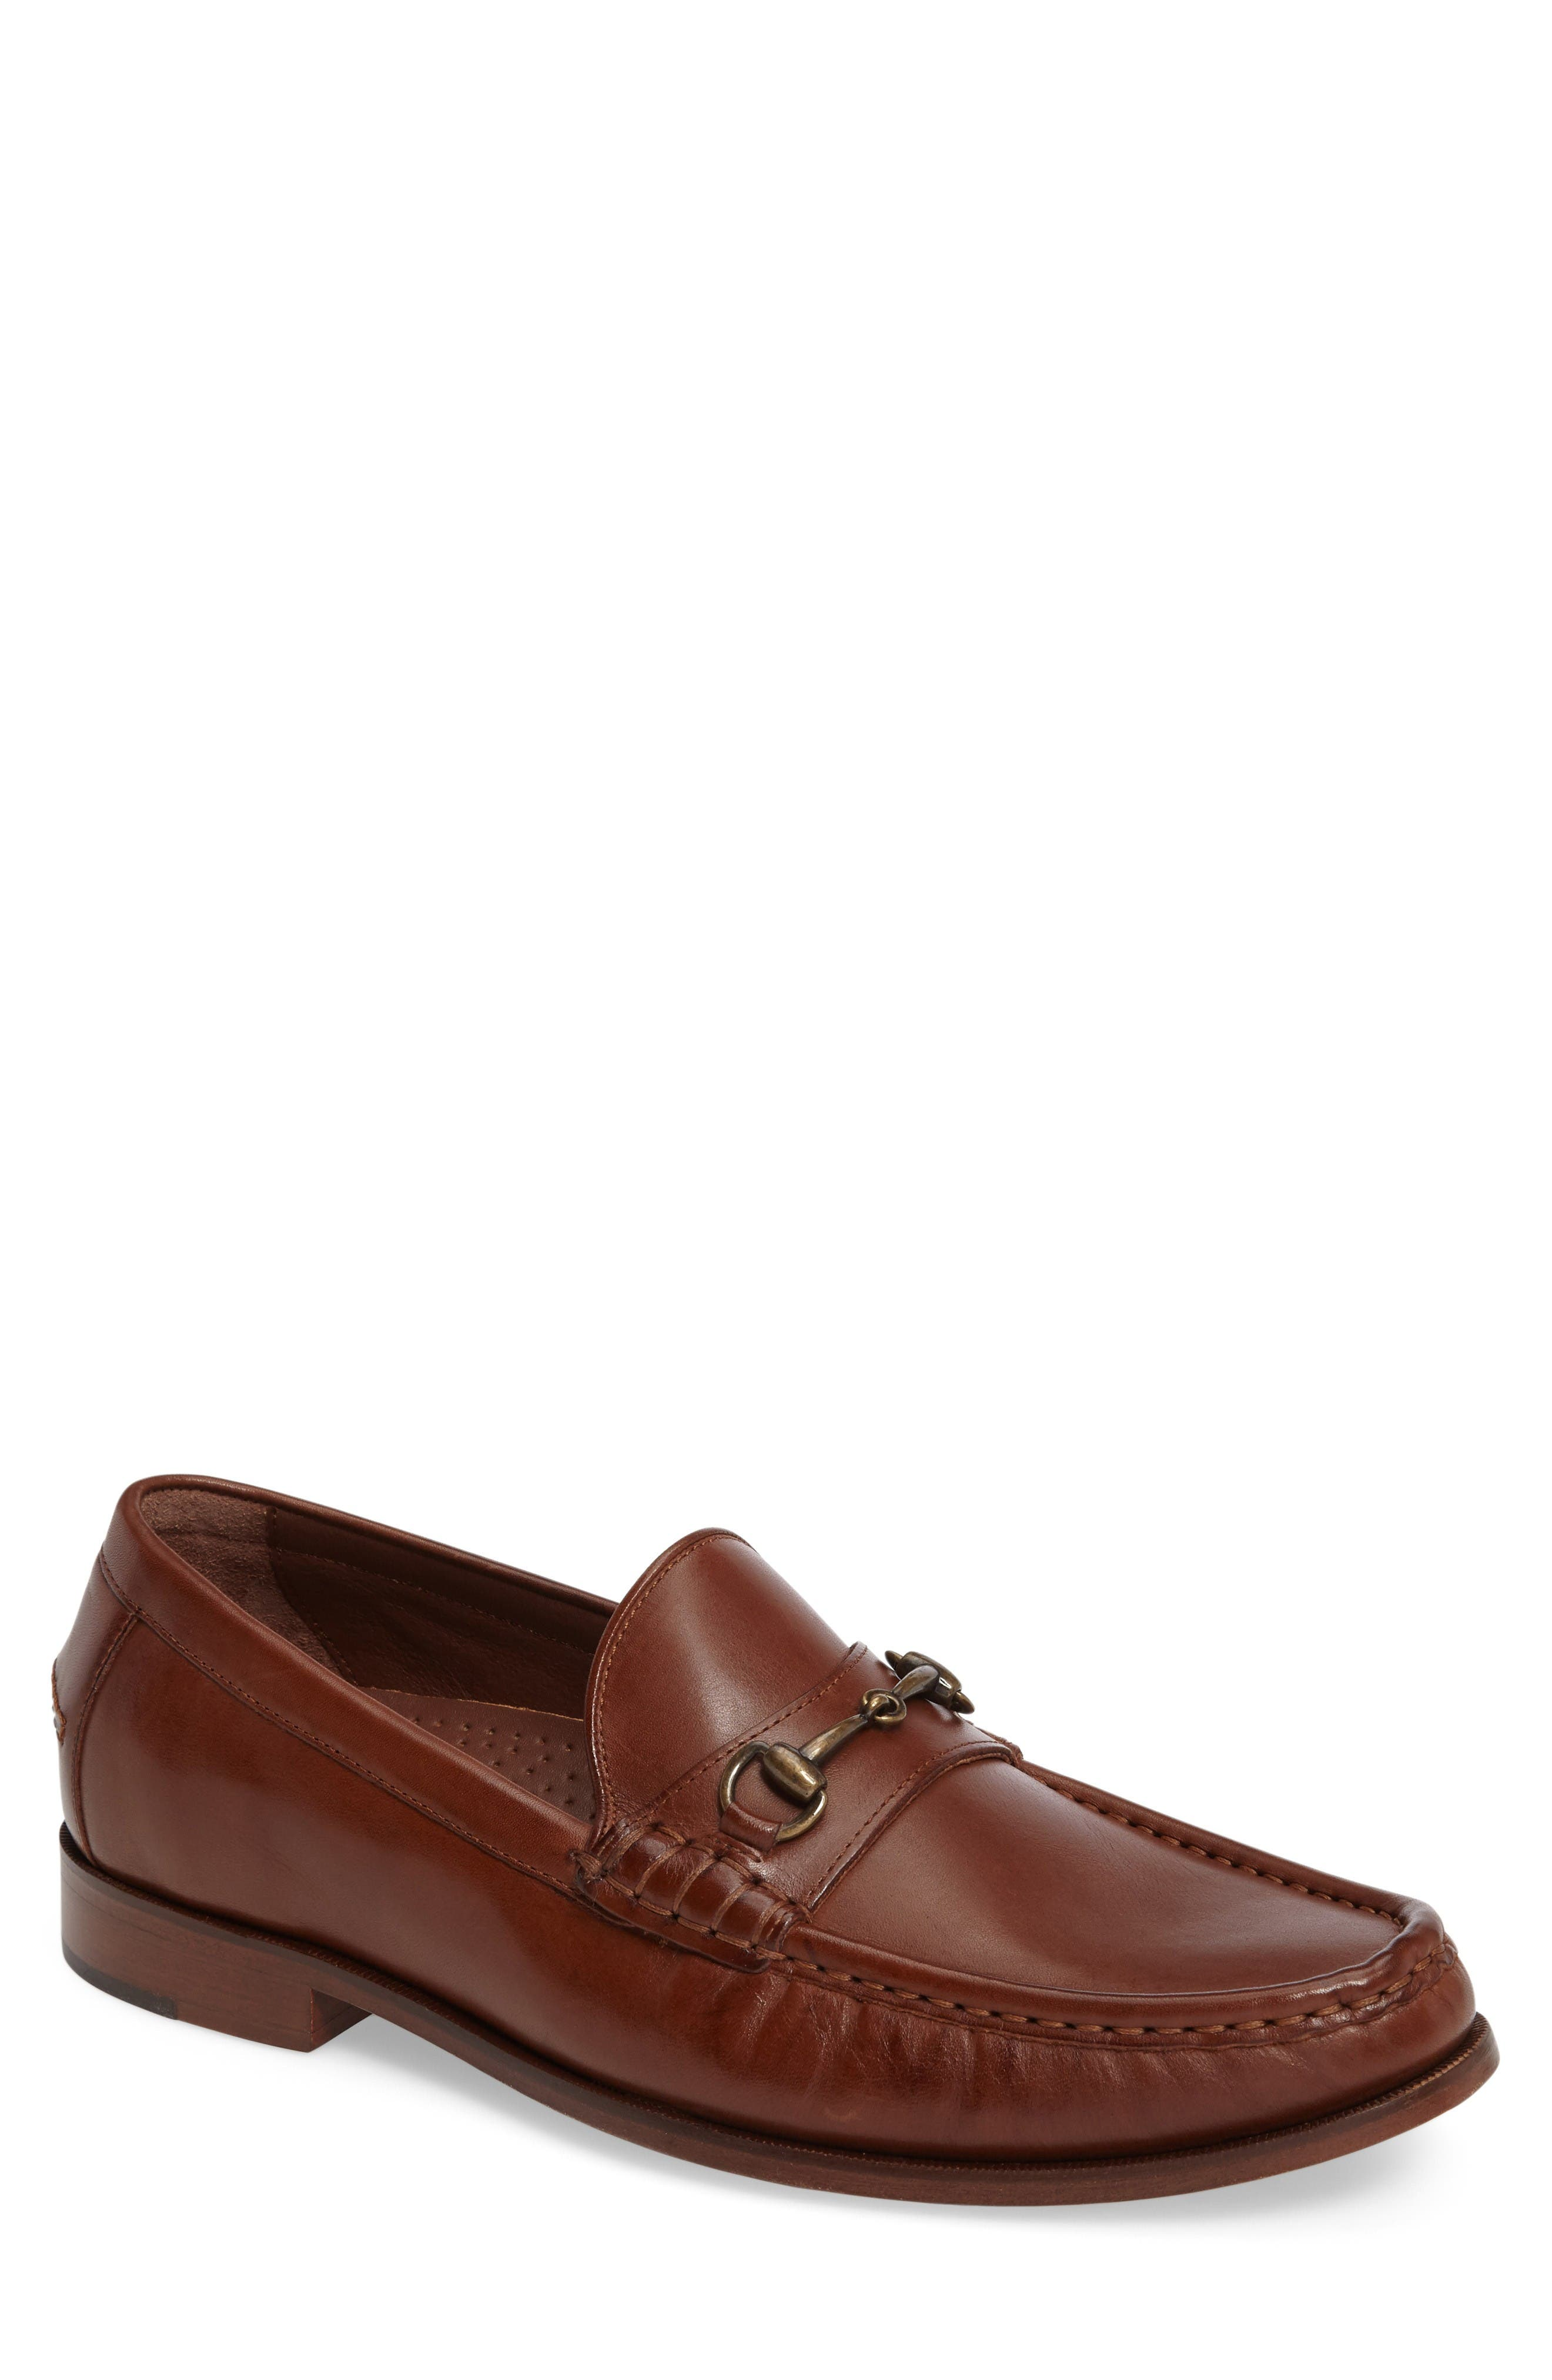 COLE HAAN Pinch Gotham Bit Loafer